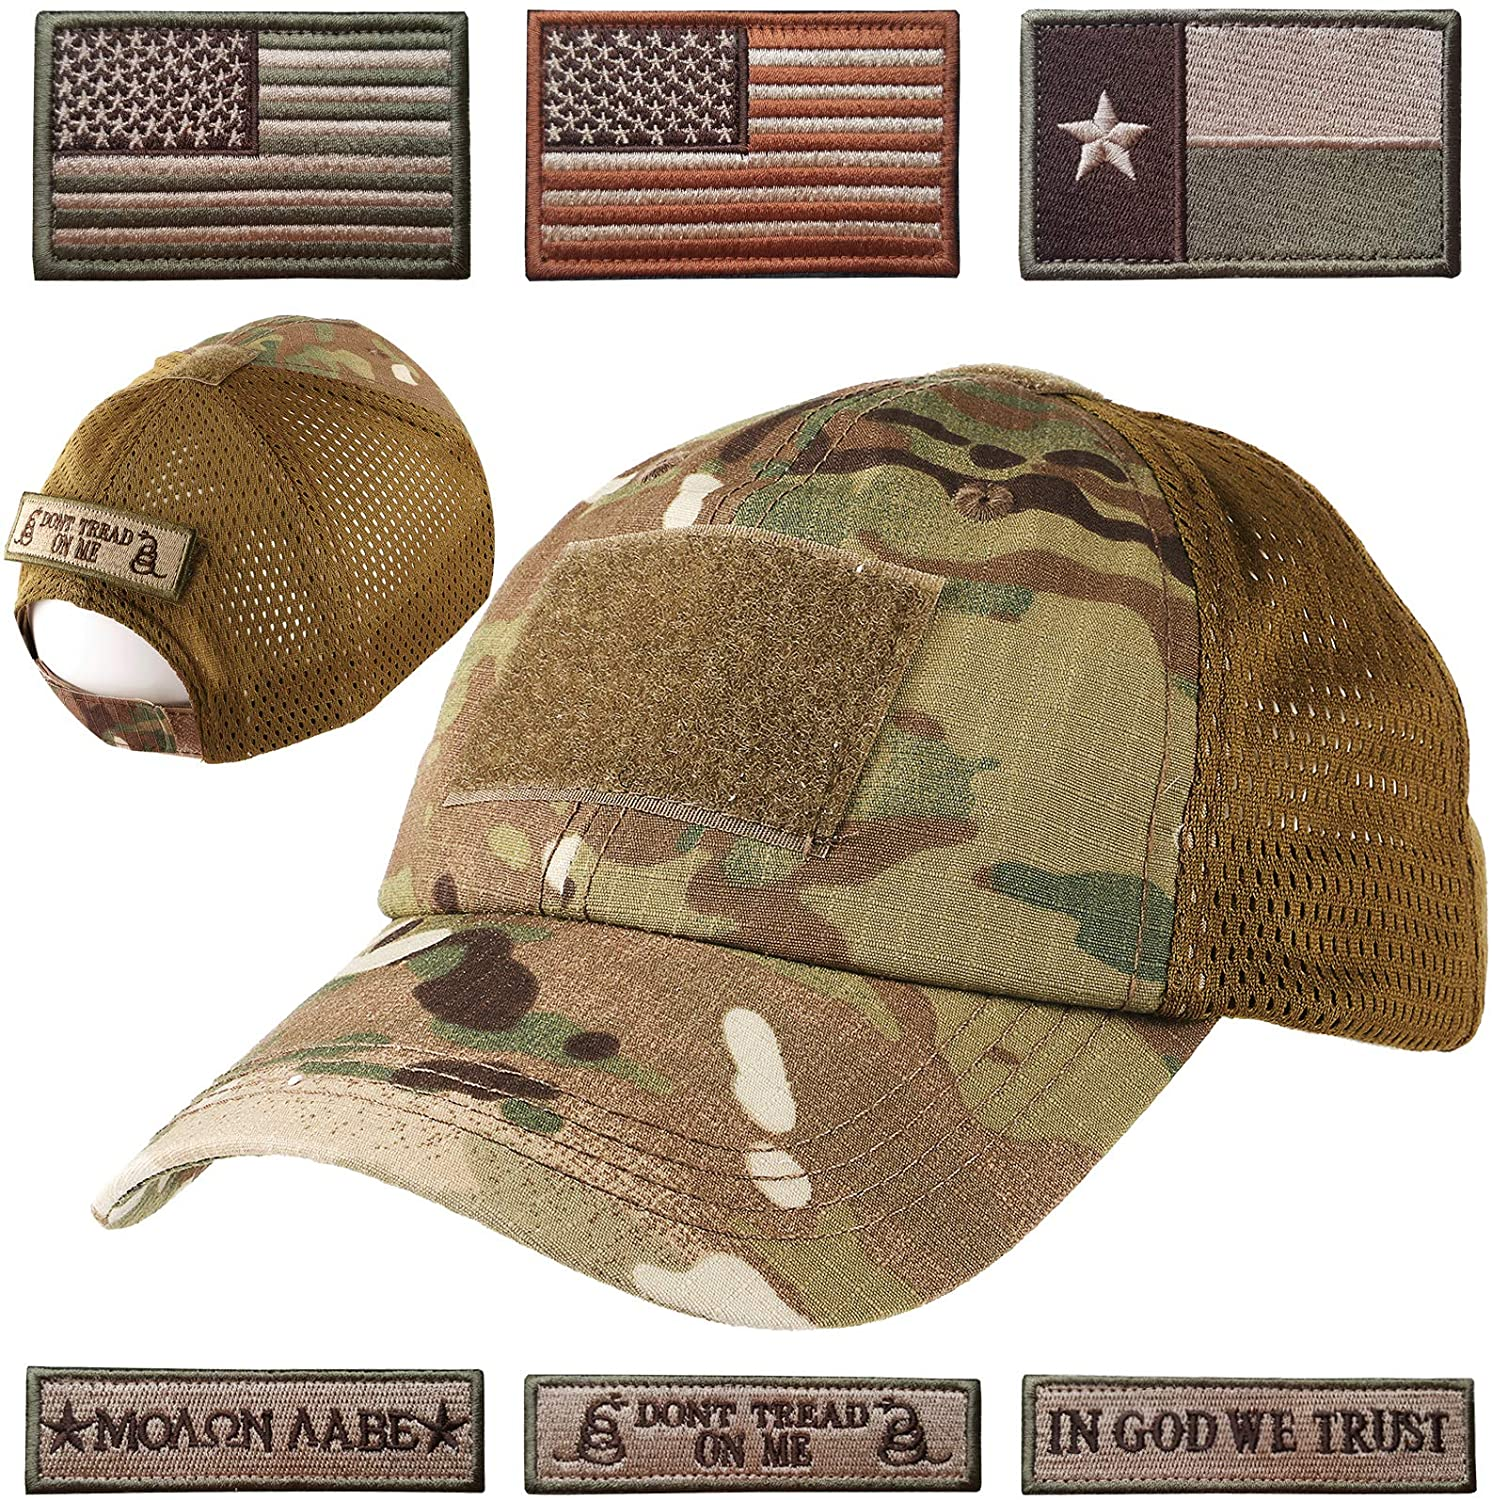 Lightbird Mesh Tactical Hat with 6 PCS Tactical Military Patches, Adjustable Operator Hat, Durable Tactical OCP Flag Ball Cap Hat for Men Work, Gym, Hiking and More